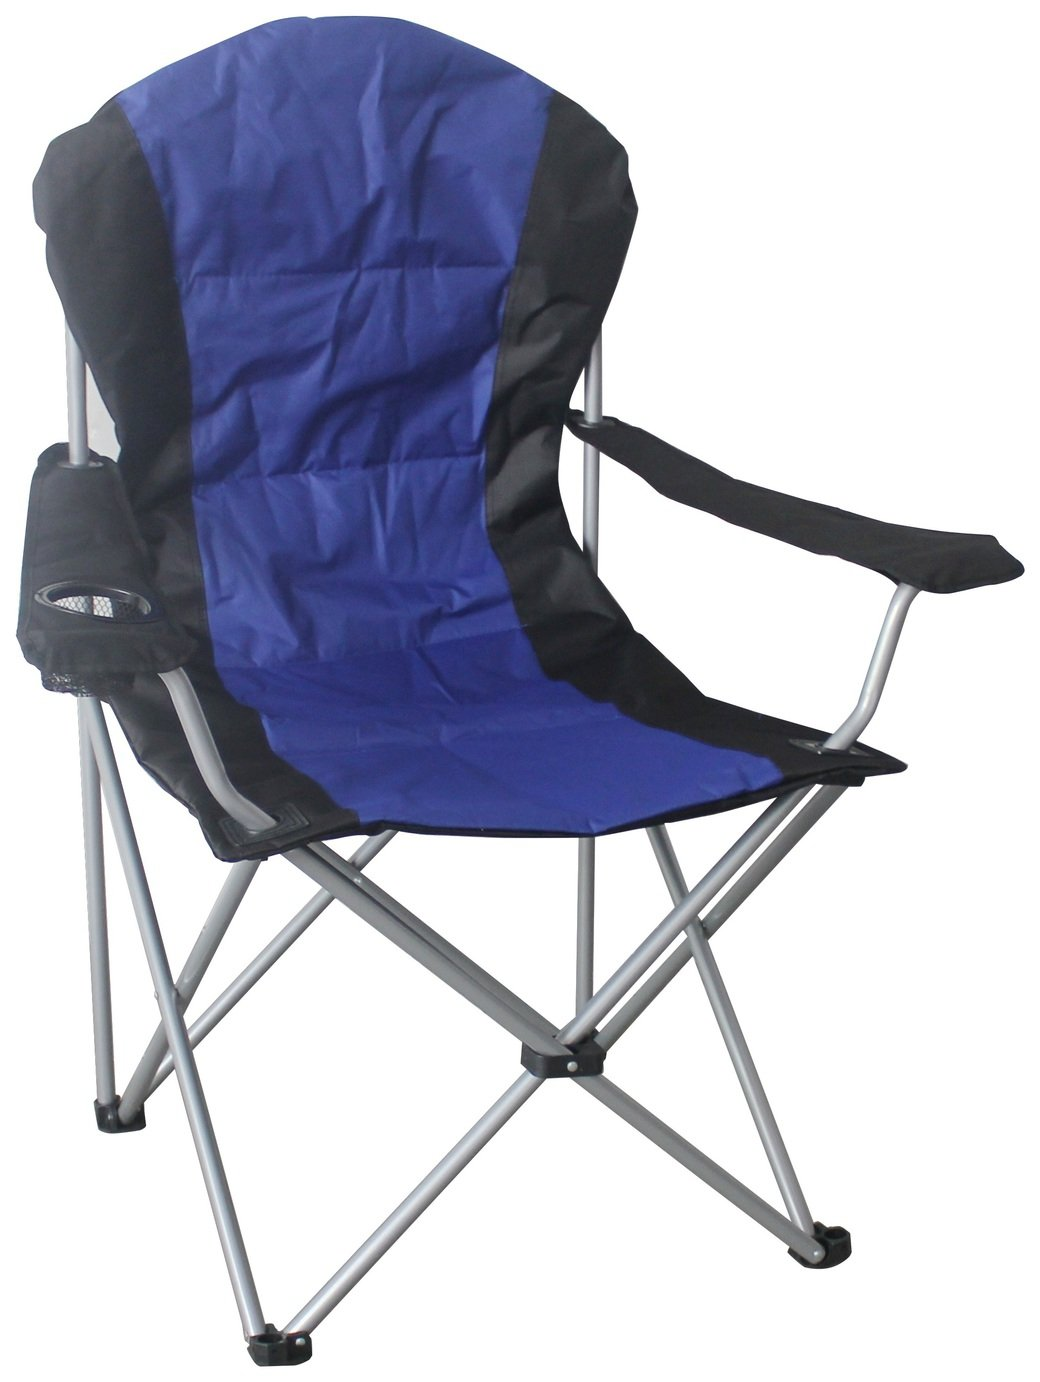 Portable Padded High Back Chair